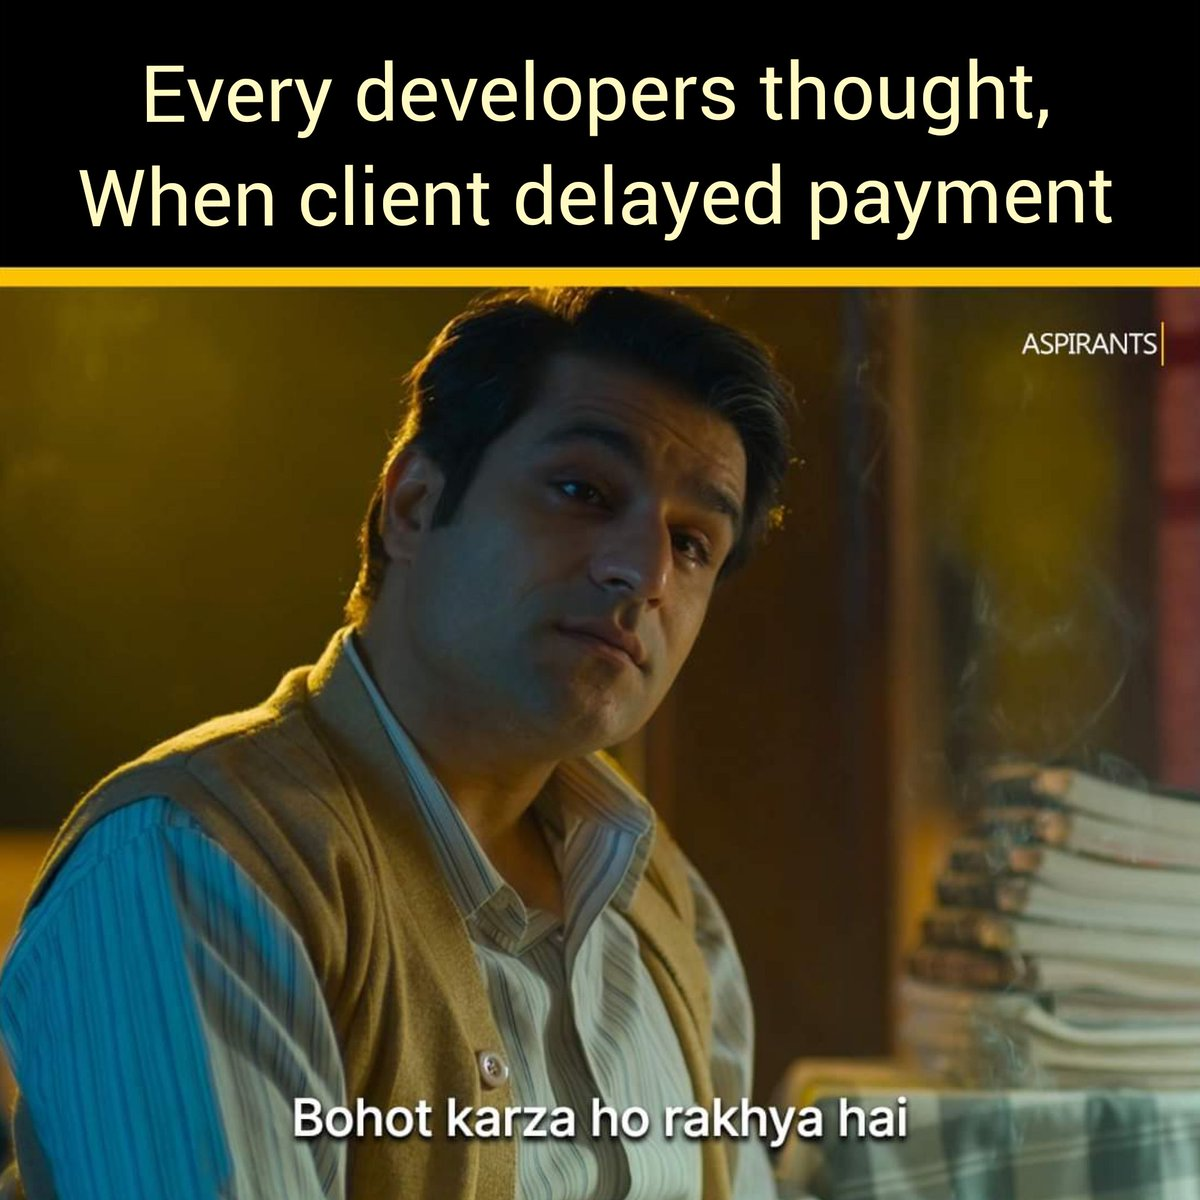 test Twitter Media - LOL Moments 🤣 Every developers thought, when client delayed payment #Aspirants #tvfaspirants #tvf #domains #VPS #dedicated_server https://t.co/HhV9bkWKDd